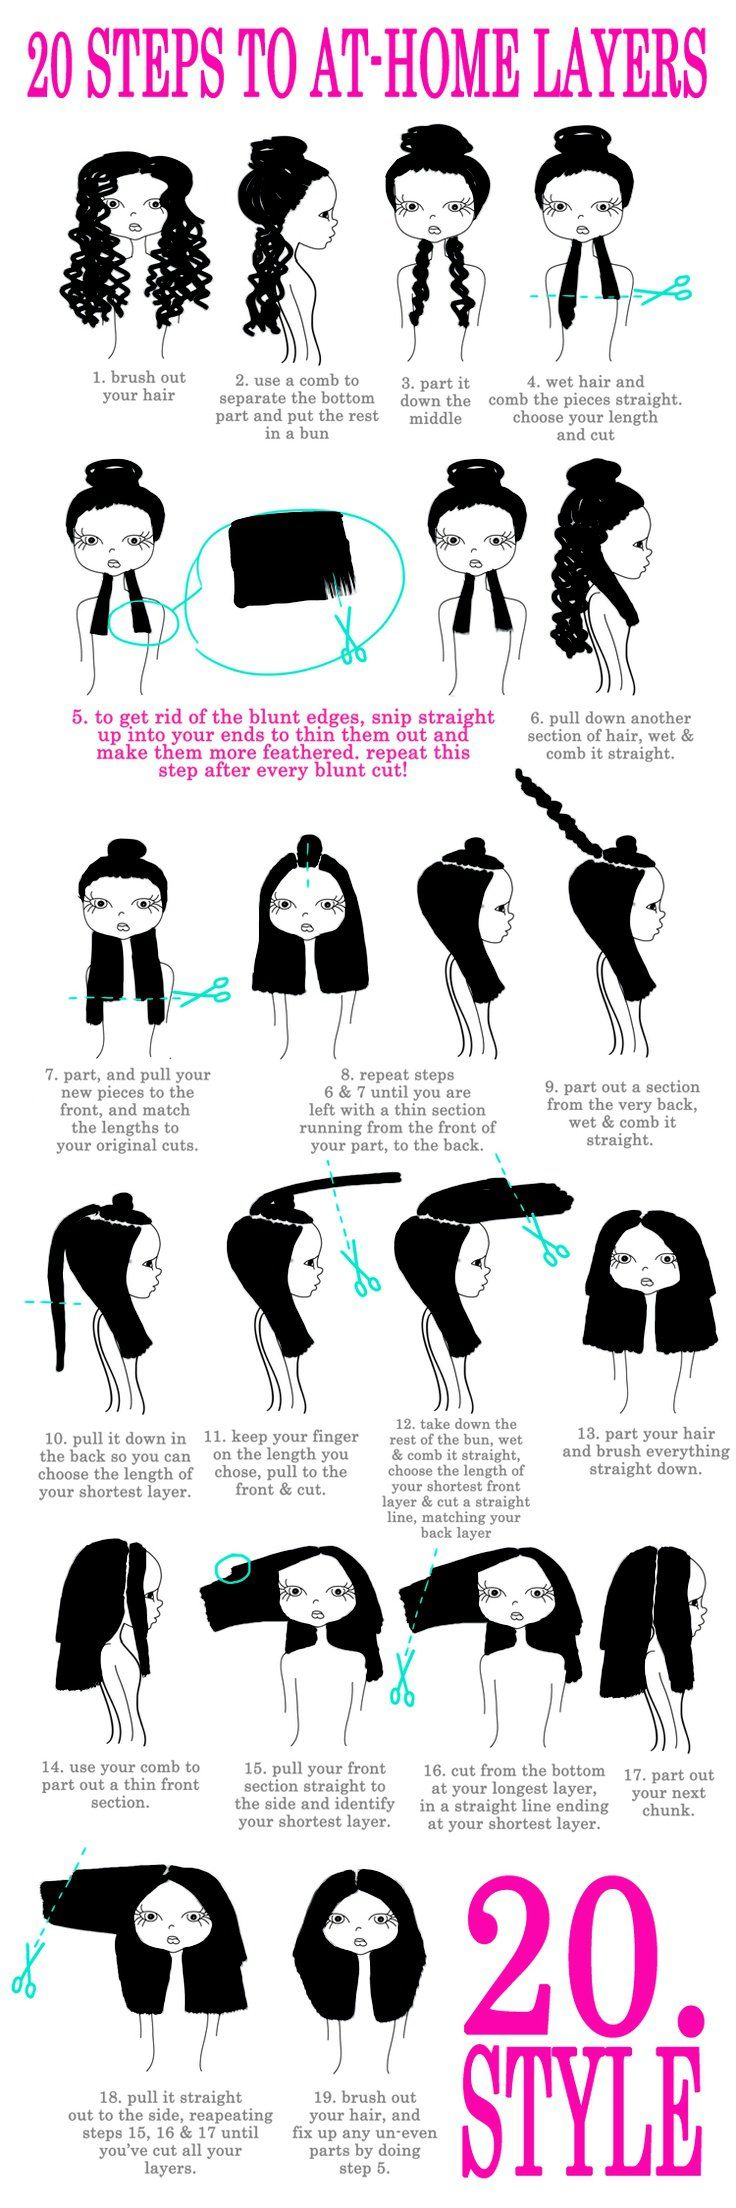 Exactly How My Hair Dresser Does It So Long As You Are Confident And Have